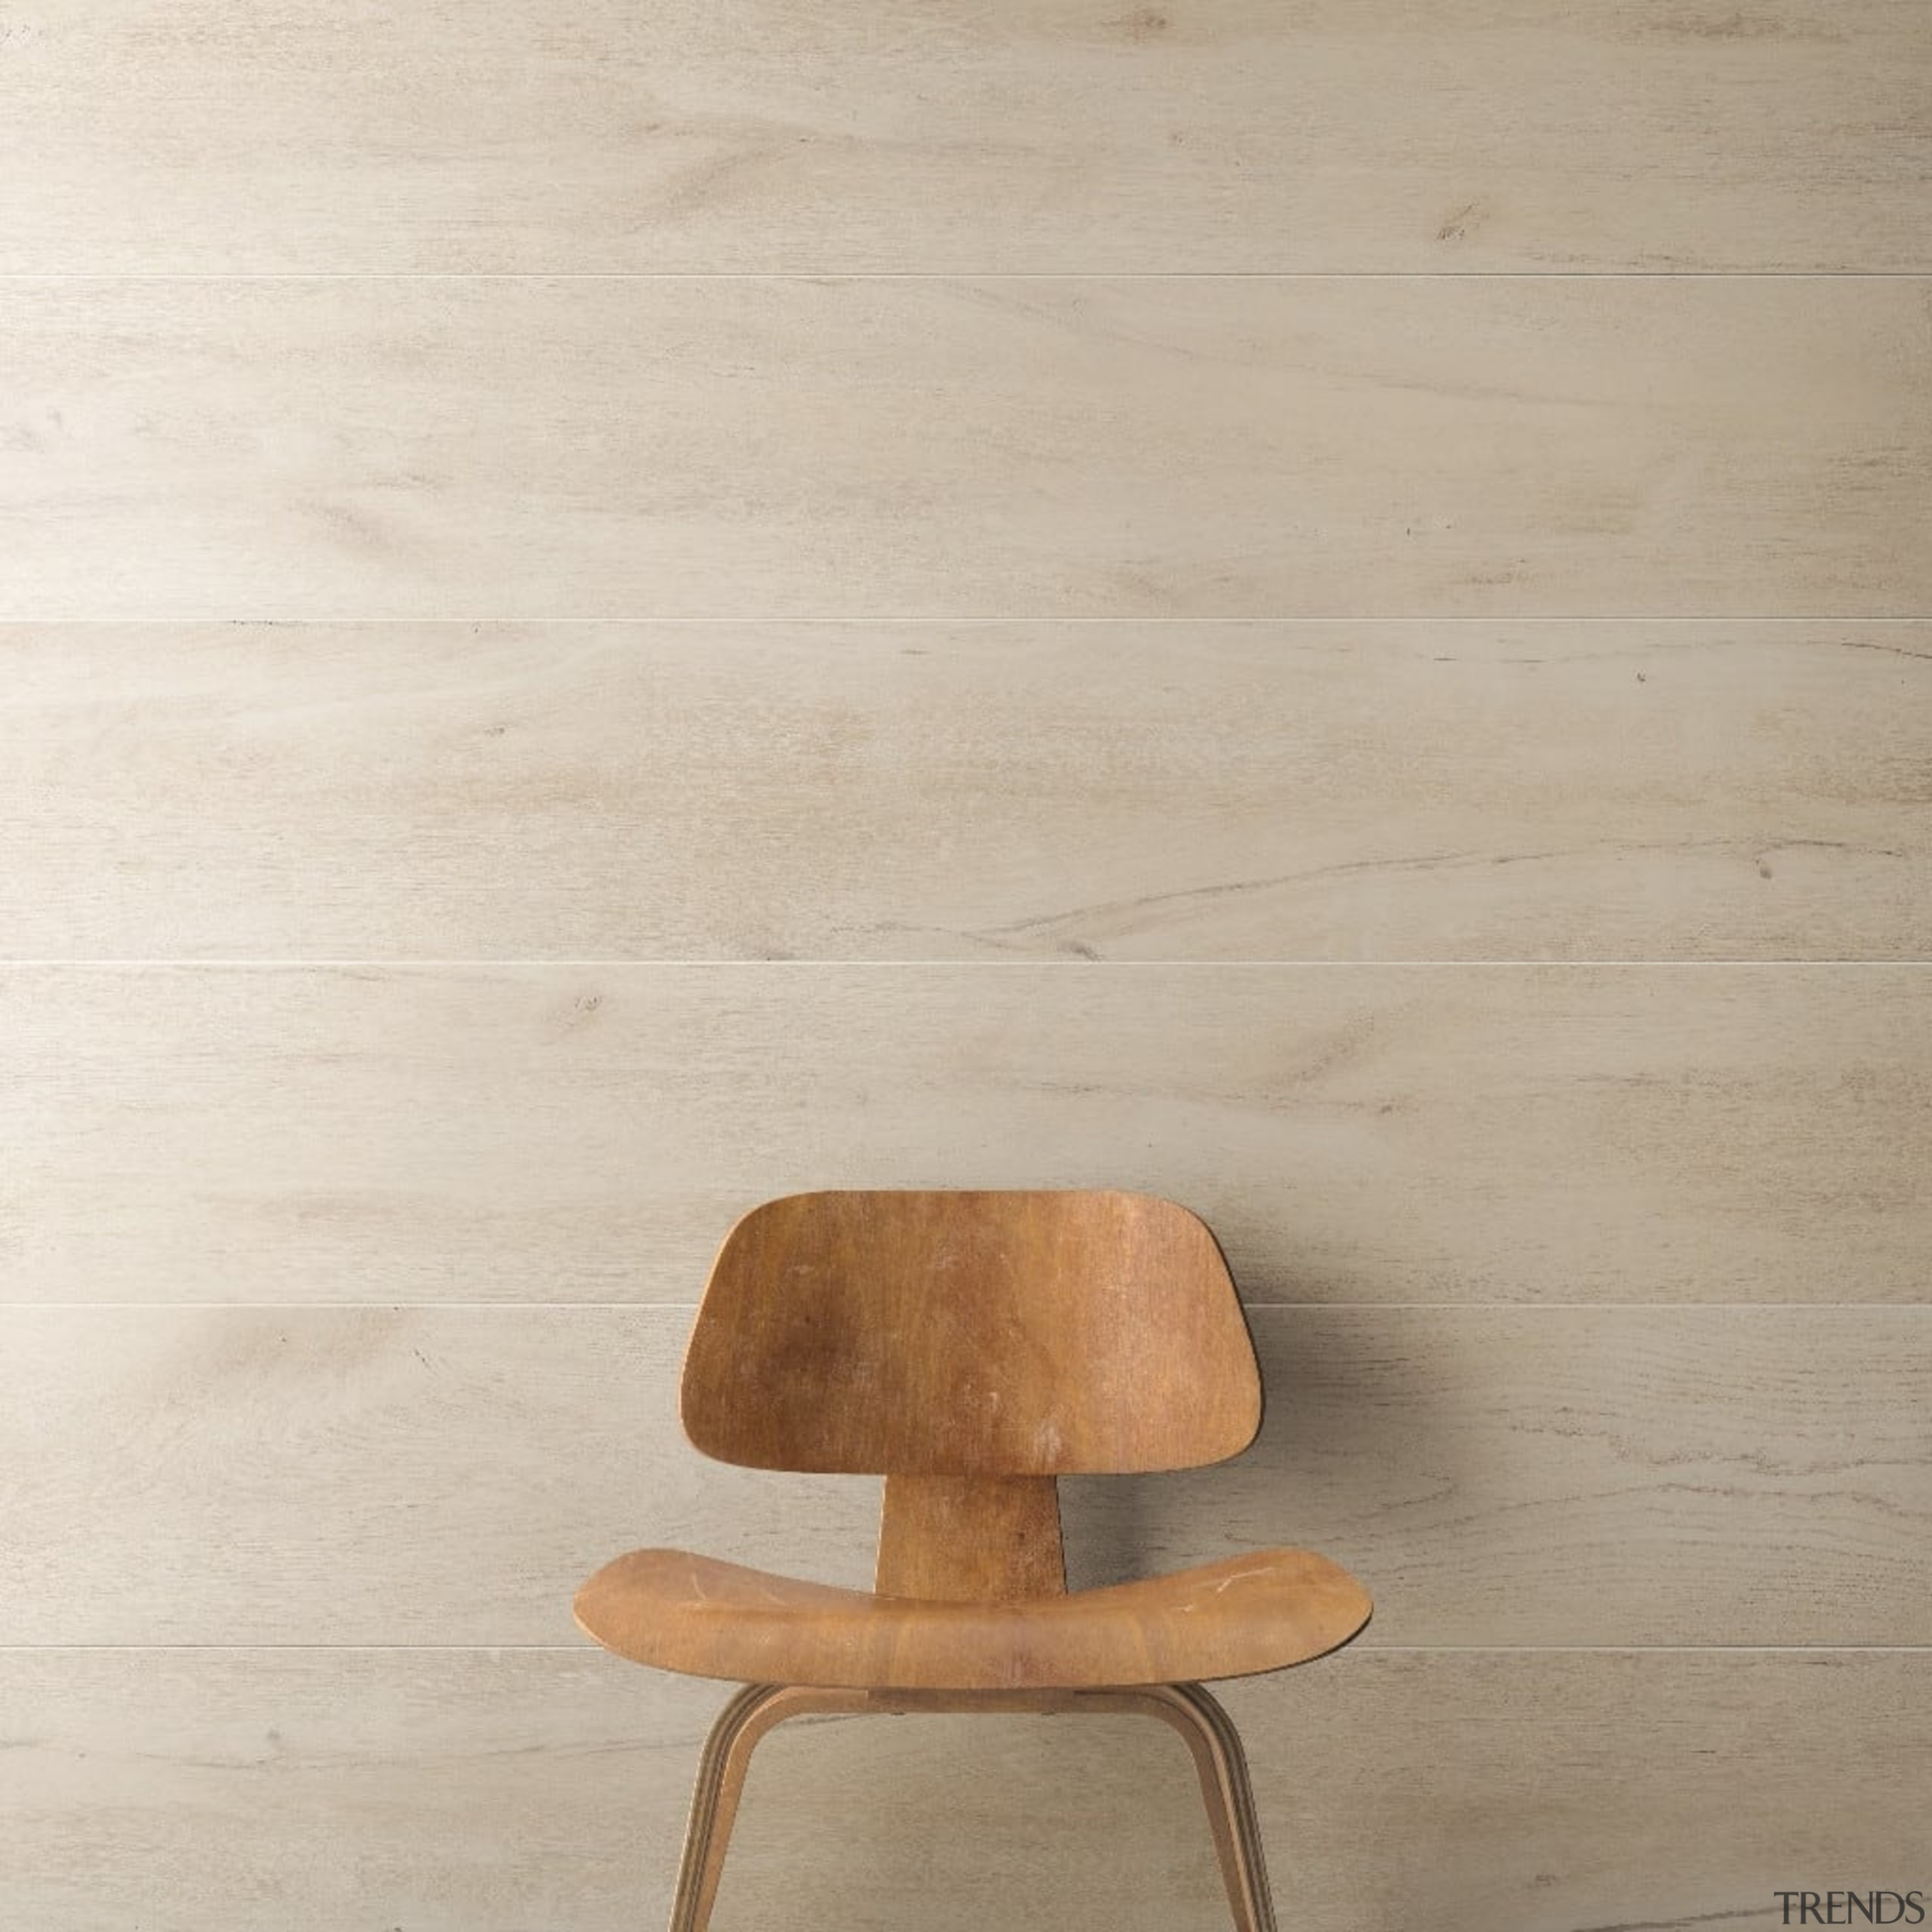 Cozy 200x1200 tiles are auto-leveling due to the chair, floor, flooring, furniture, hardwood, plywood, table, wood, wood stain, gray